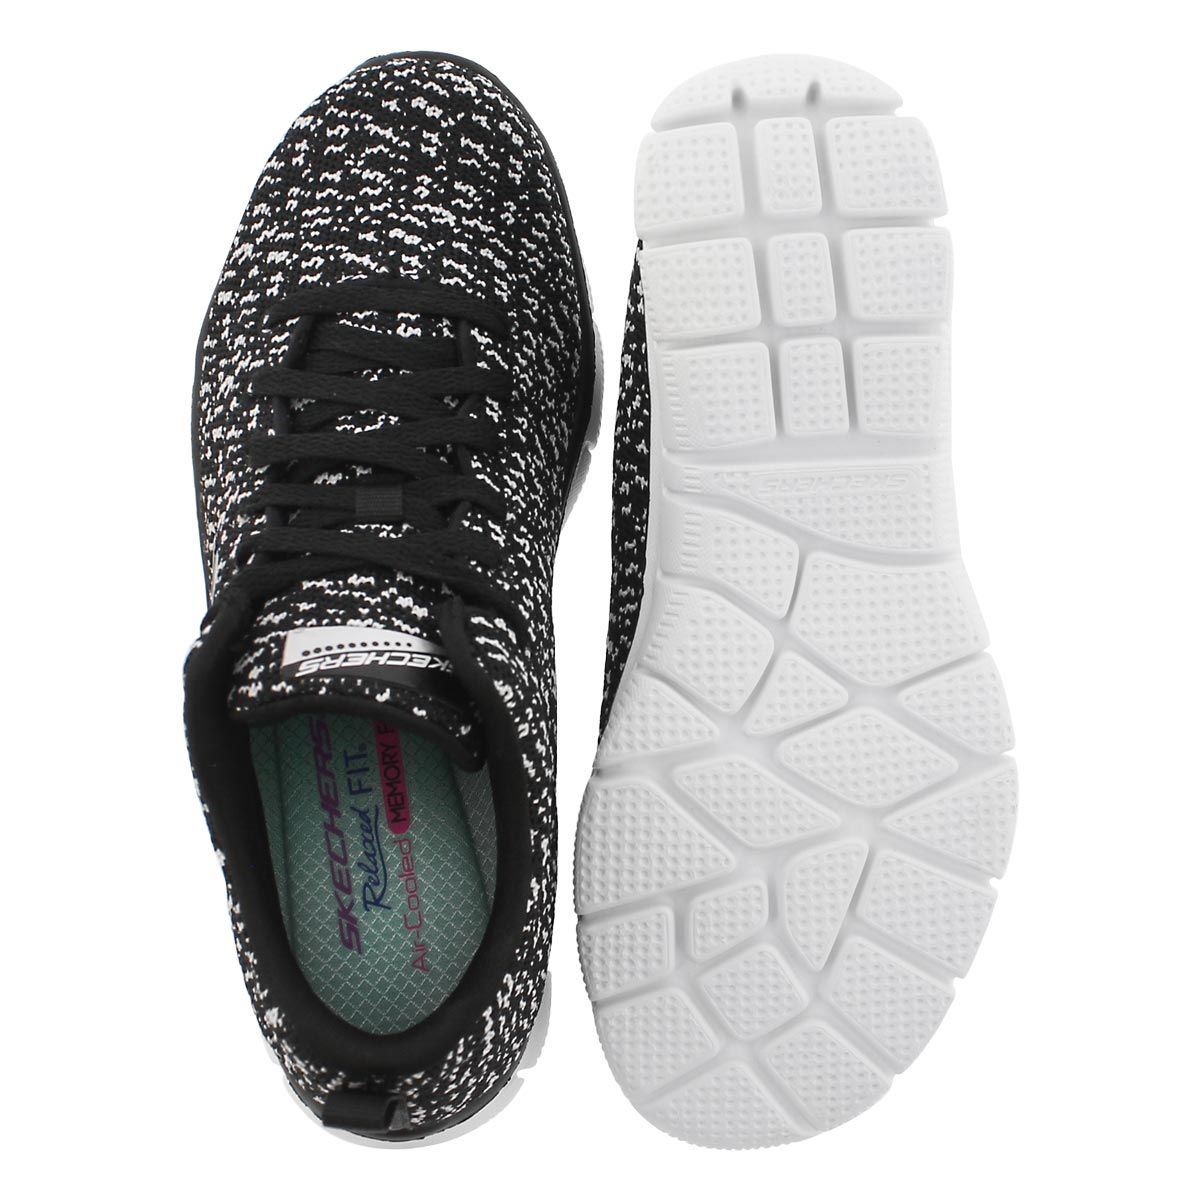 Lds Empire Connections black sneaker